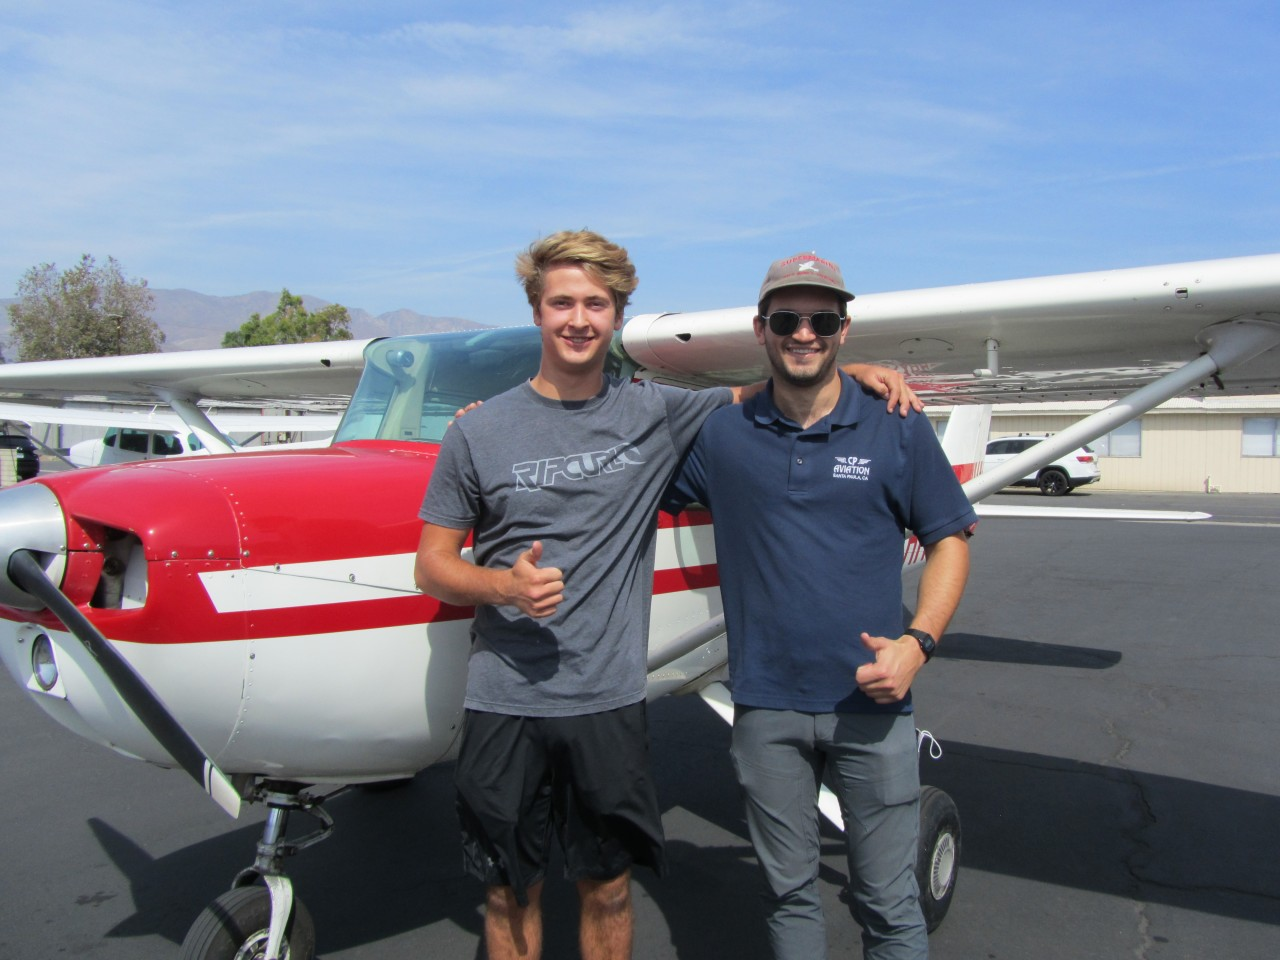 First Solo - Jake Stolworthy